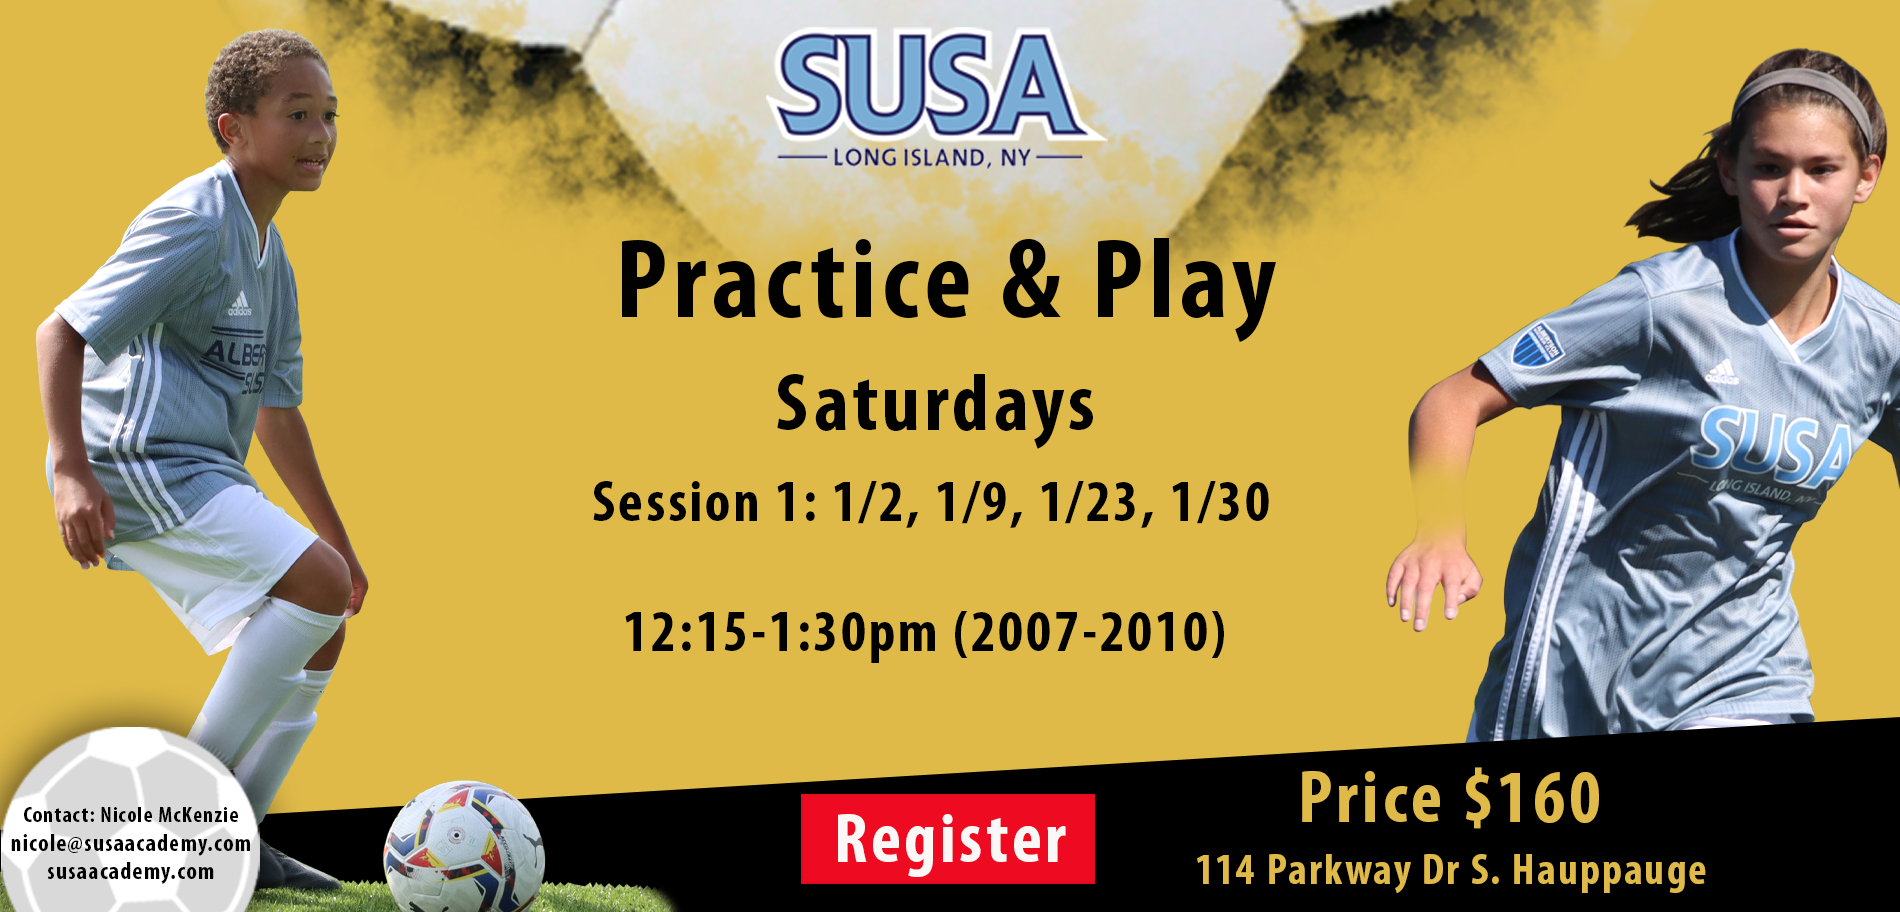 Practice and Play Saturdays